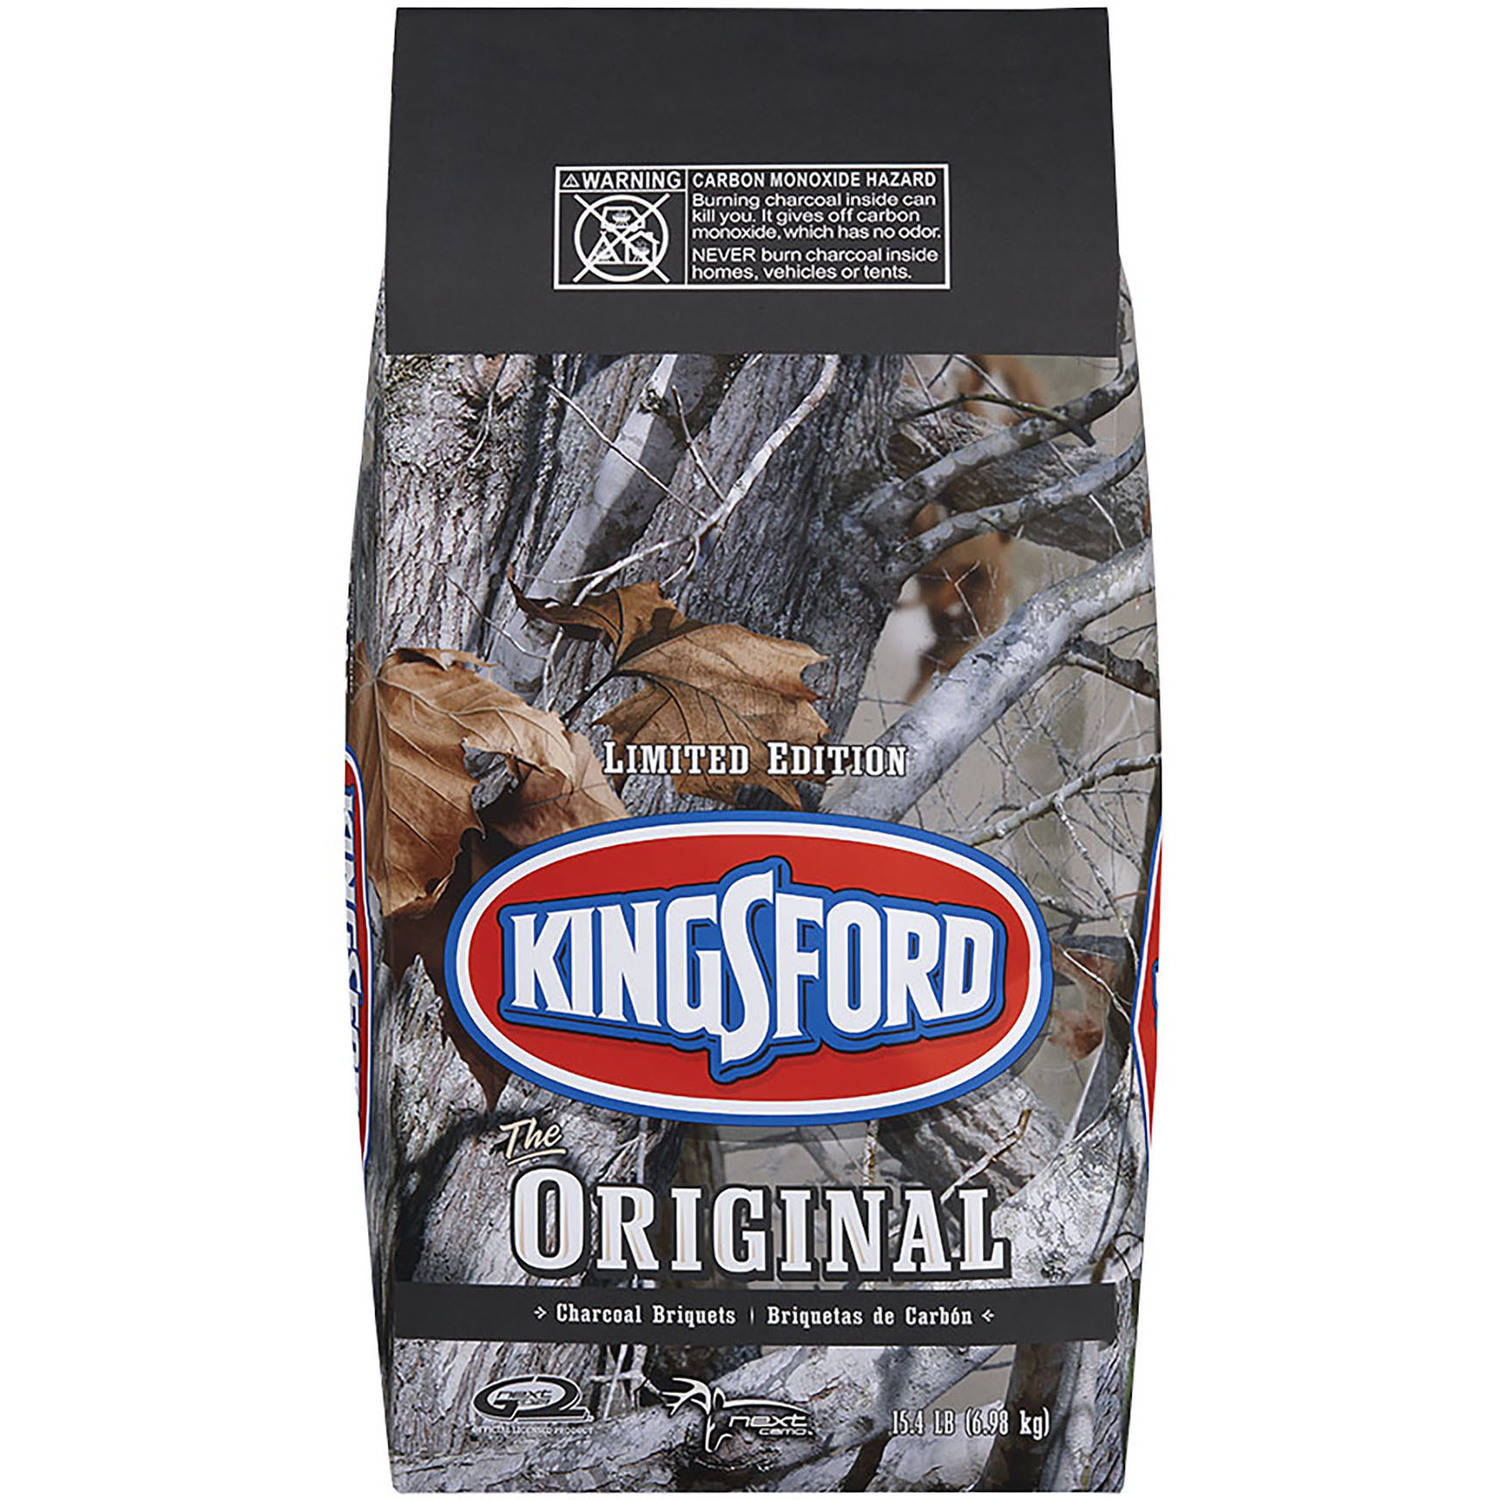 Kingsford Charcoal Briquets, 15.4 lb Limited Edition Camo Bag